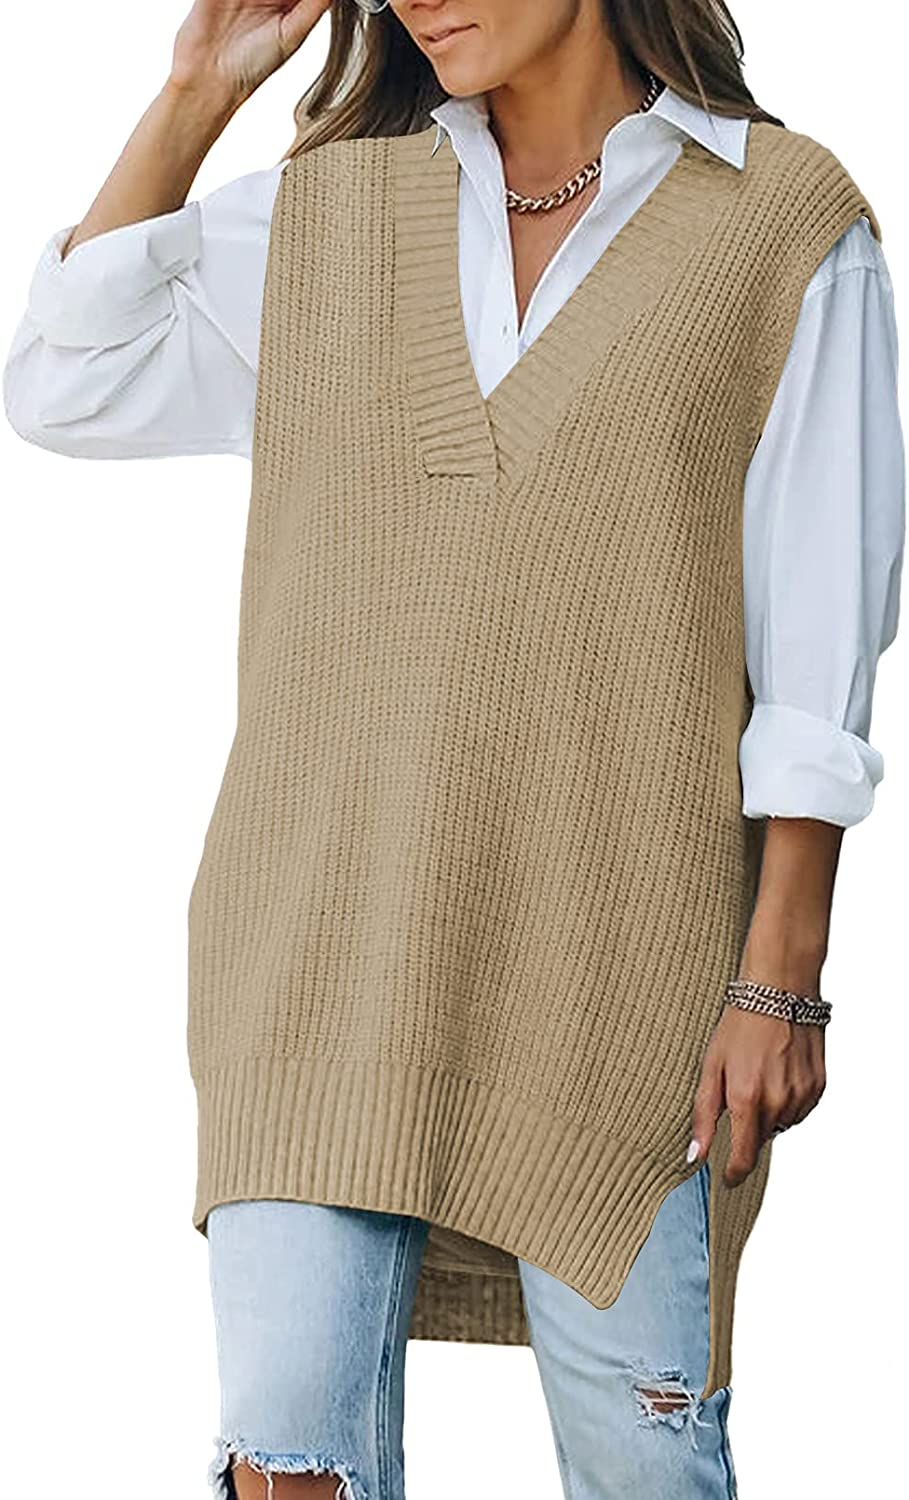 Selowin Women's Sweater Vest V Neck Cable Knit Sweaters Loose Pullover Top